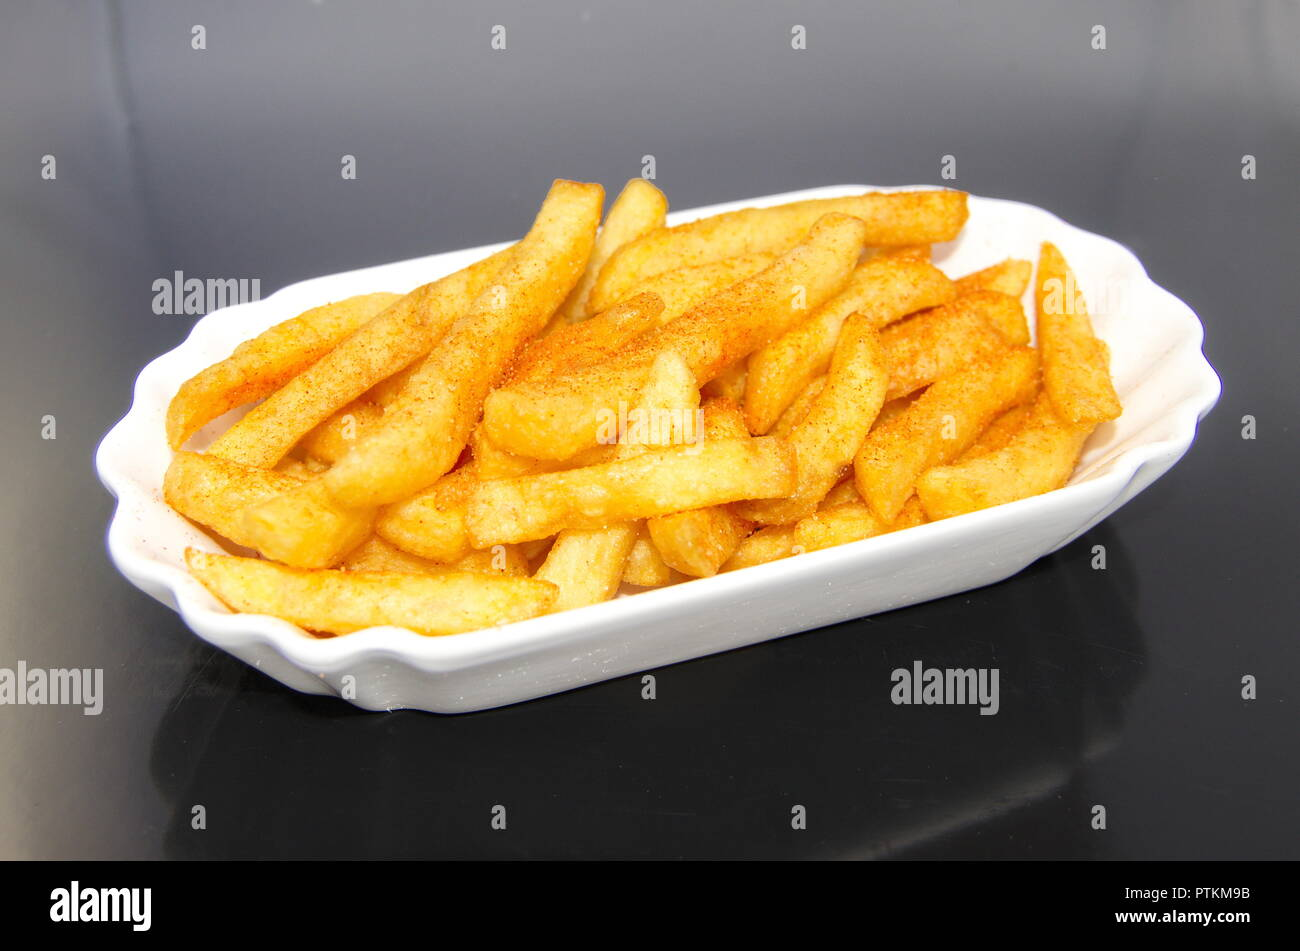 Porzellanschale mit Portion French Fries - Stock Image